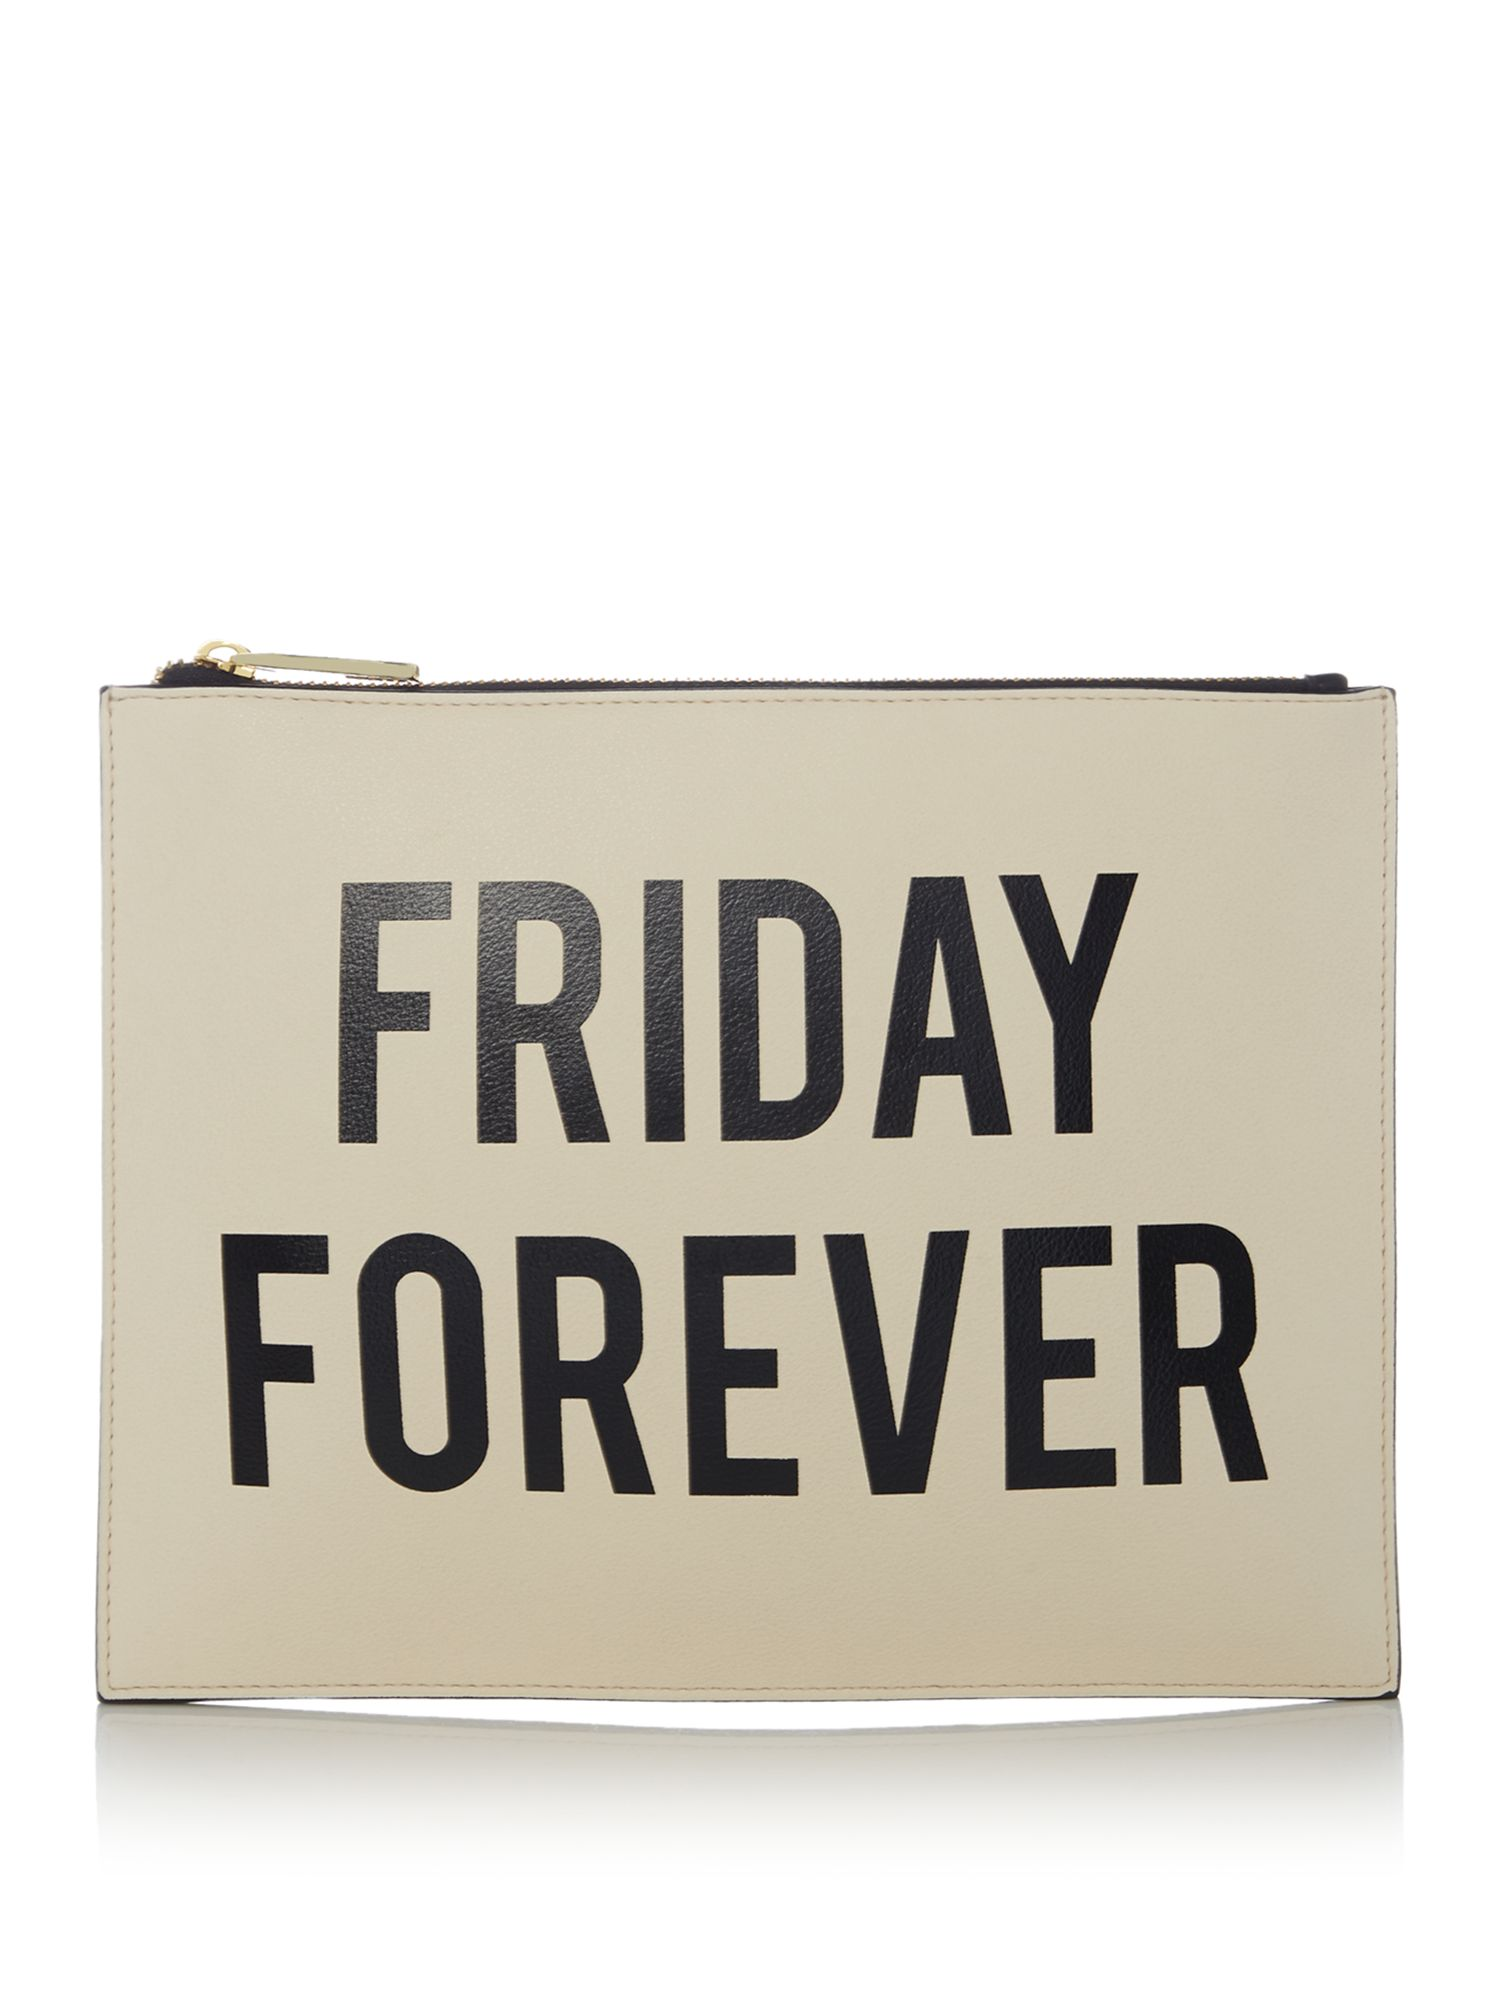 Therapy Friday forever pouch, Black